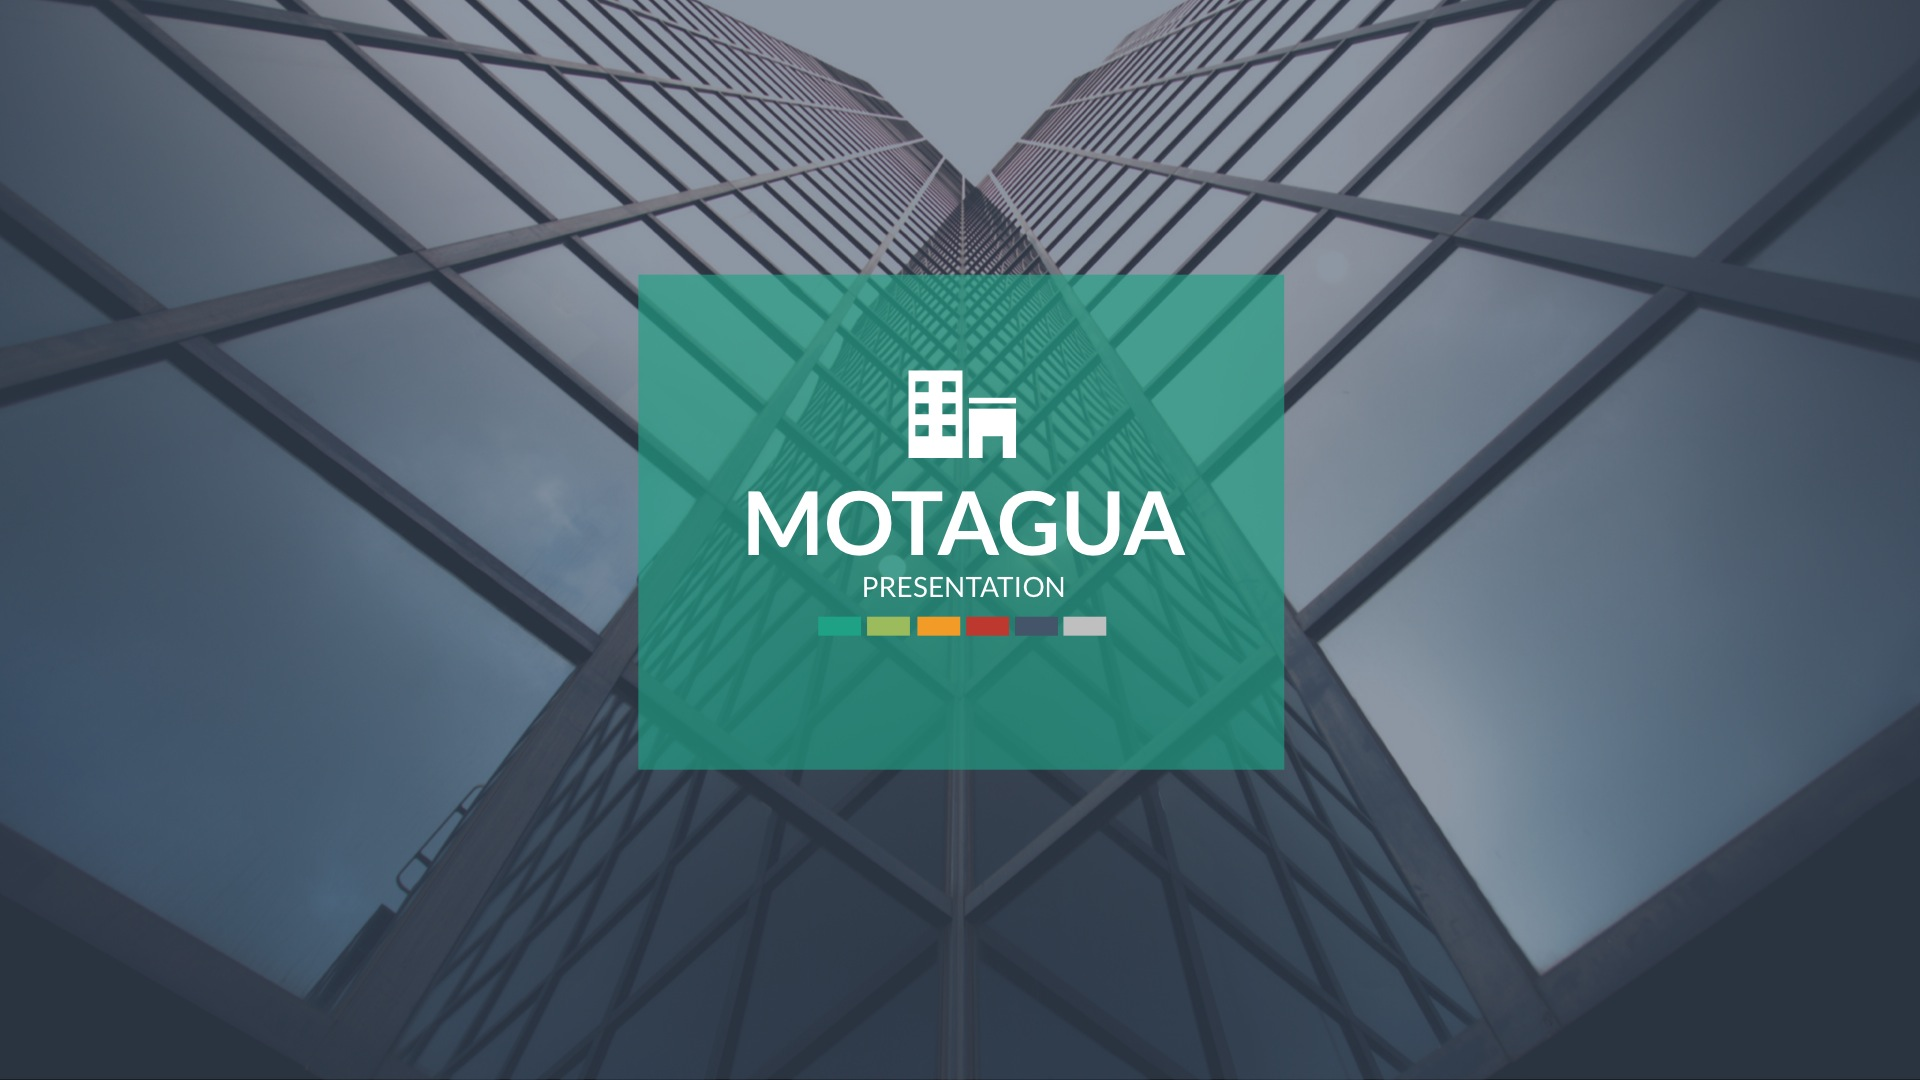 10 powerpoint business templates to wow your audience the multipurpose powerpoint business template from motagua accmission Choice Image